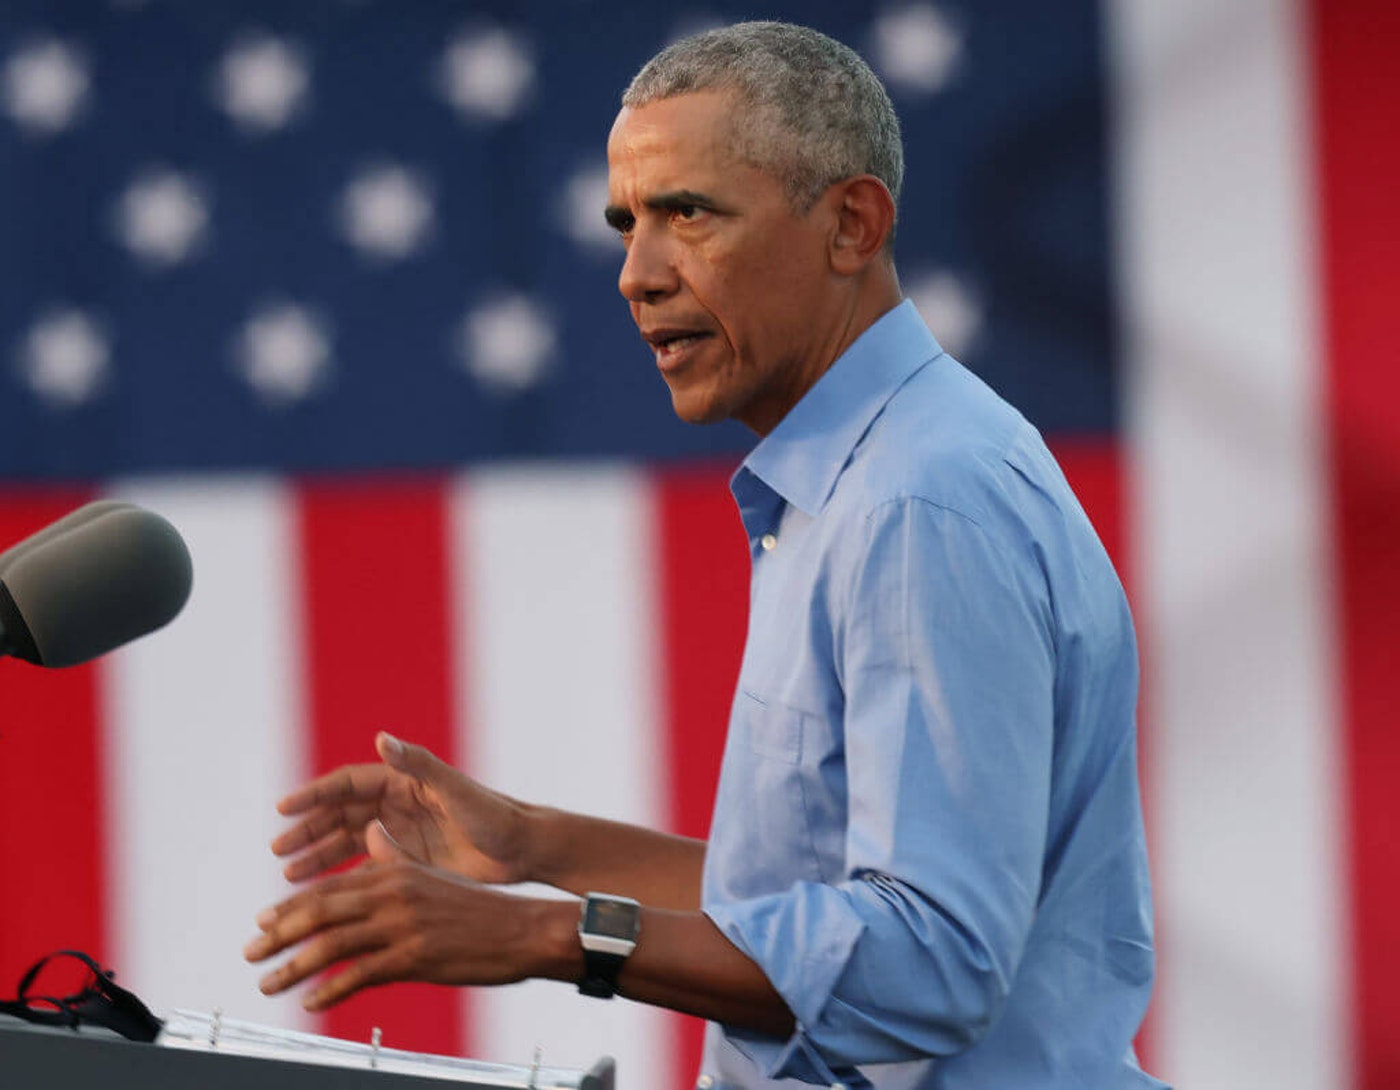 Former U.S. President Barack Obama speaks during a drive-in rally while campaigning for Democratic nominee Joseph Biden, on October 21, 2020 in Philadelphia, Pennsylvania. Biden is polling ahead of President Donald Trump in this battleground state that Trump narrowly won in 2016. (Photo by Michael M. Santiago/Getty Images)